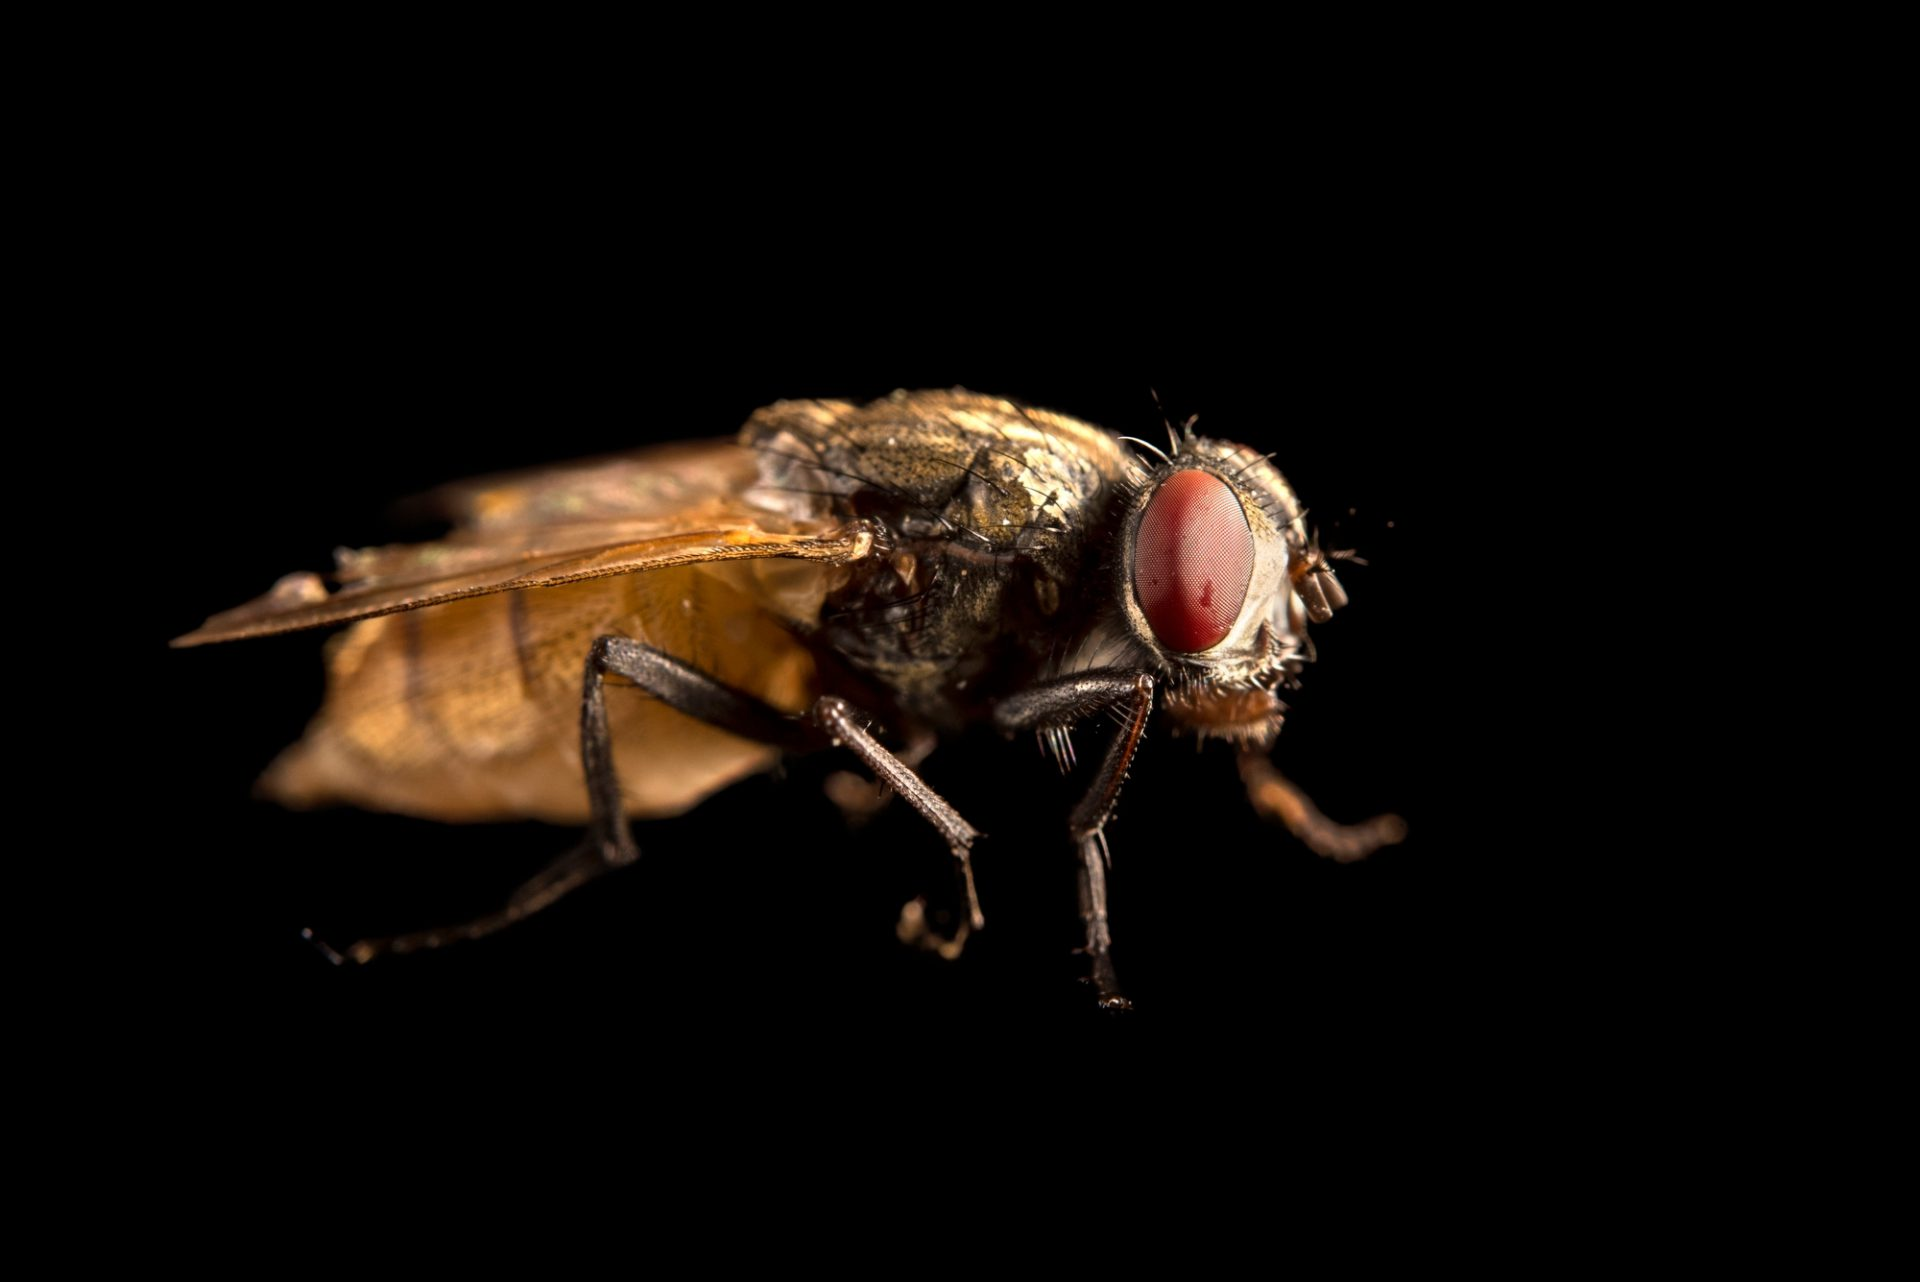 Photo: A housefly (Musca domestica) at the Urban Entomology Lab at the University of Florida at Gainesville.